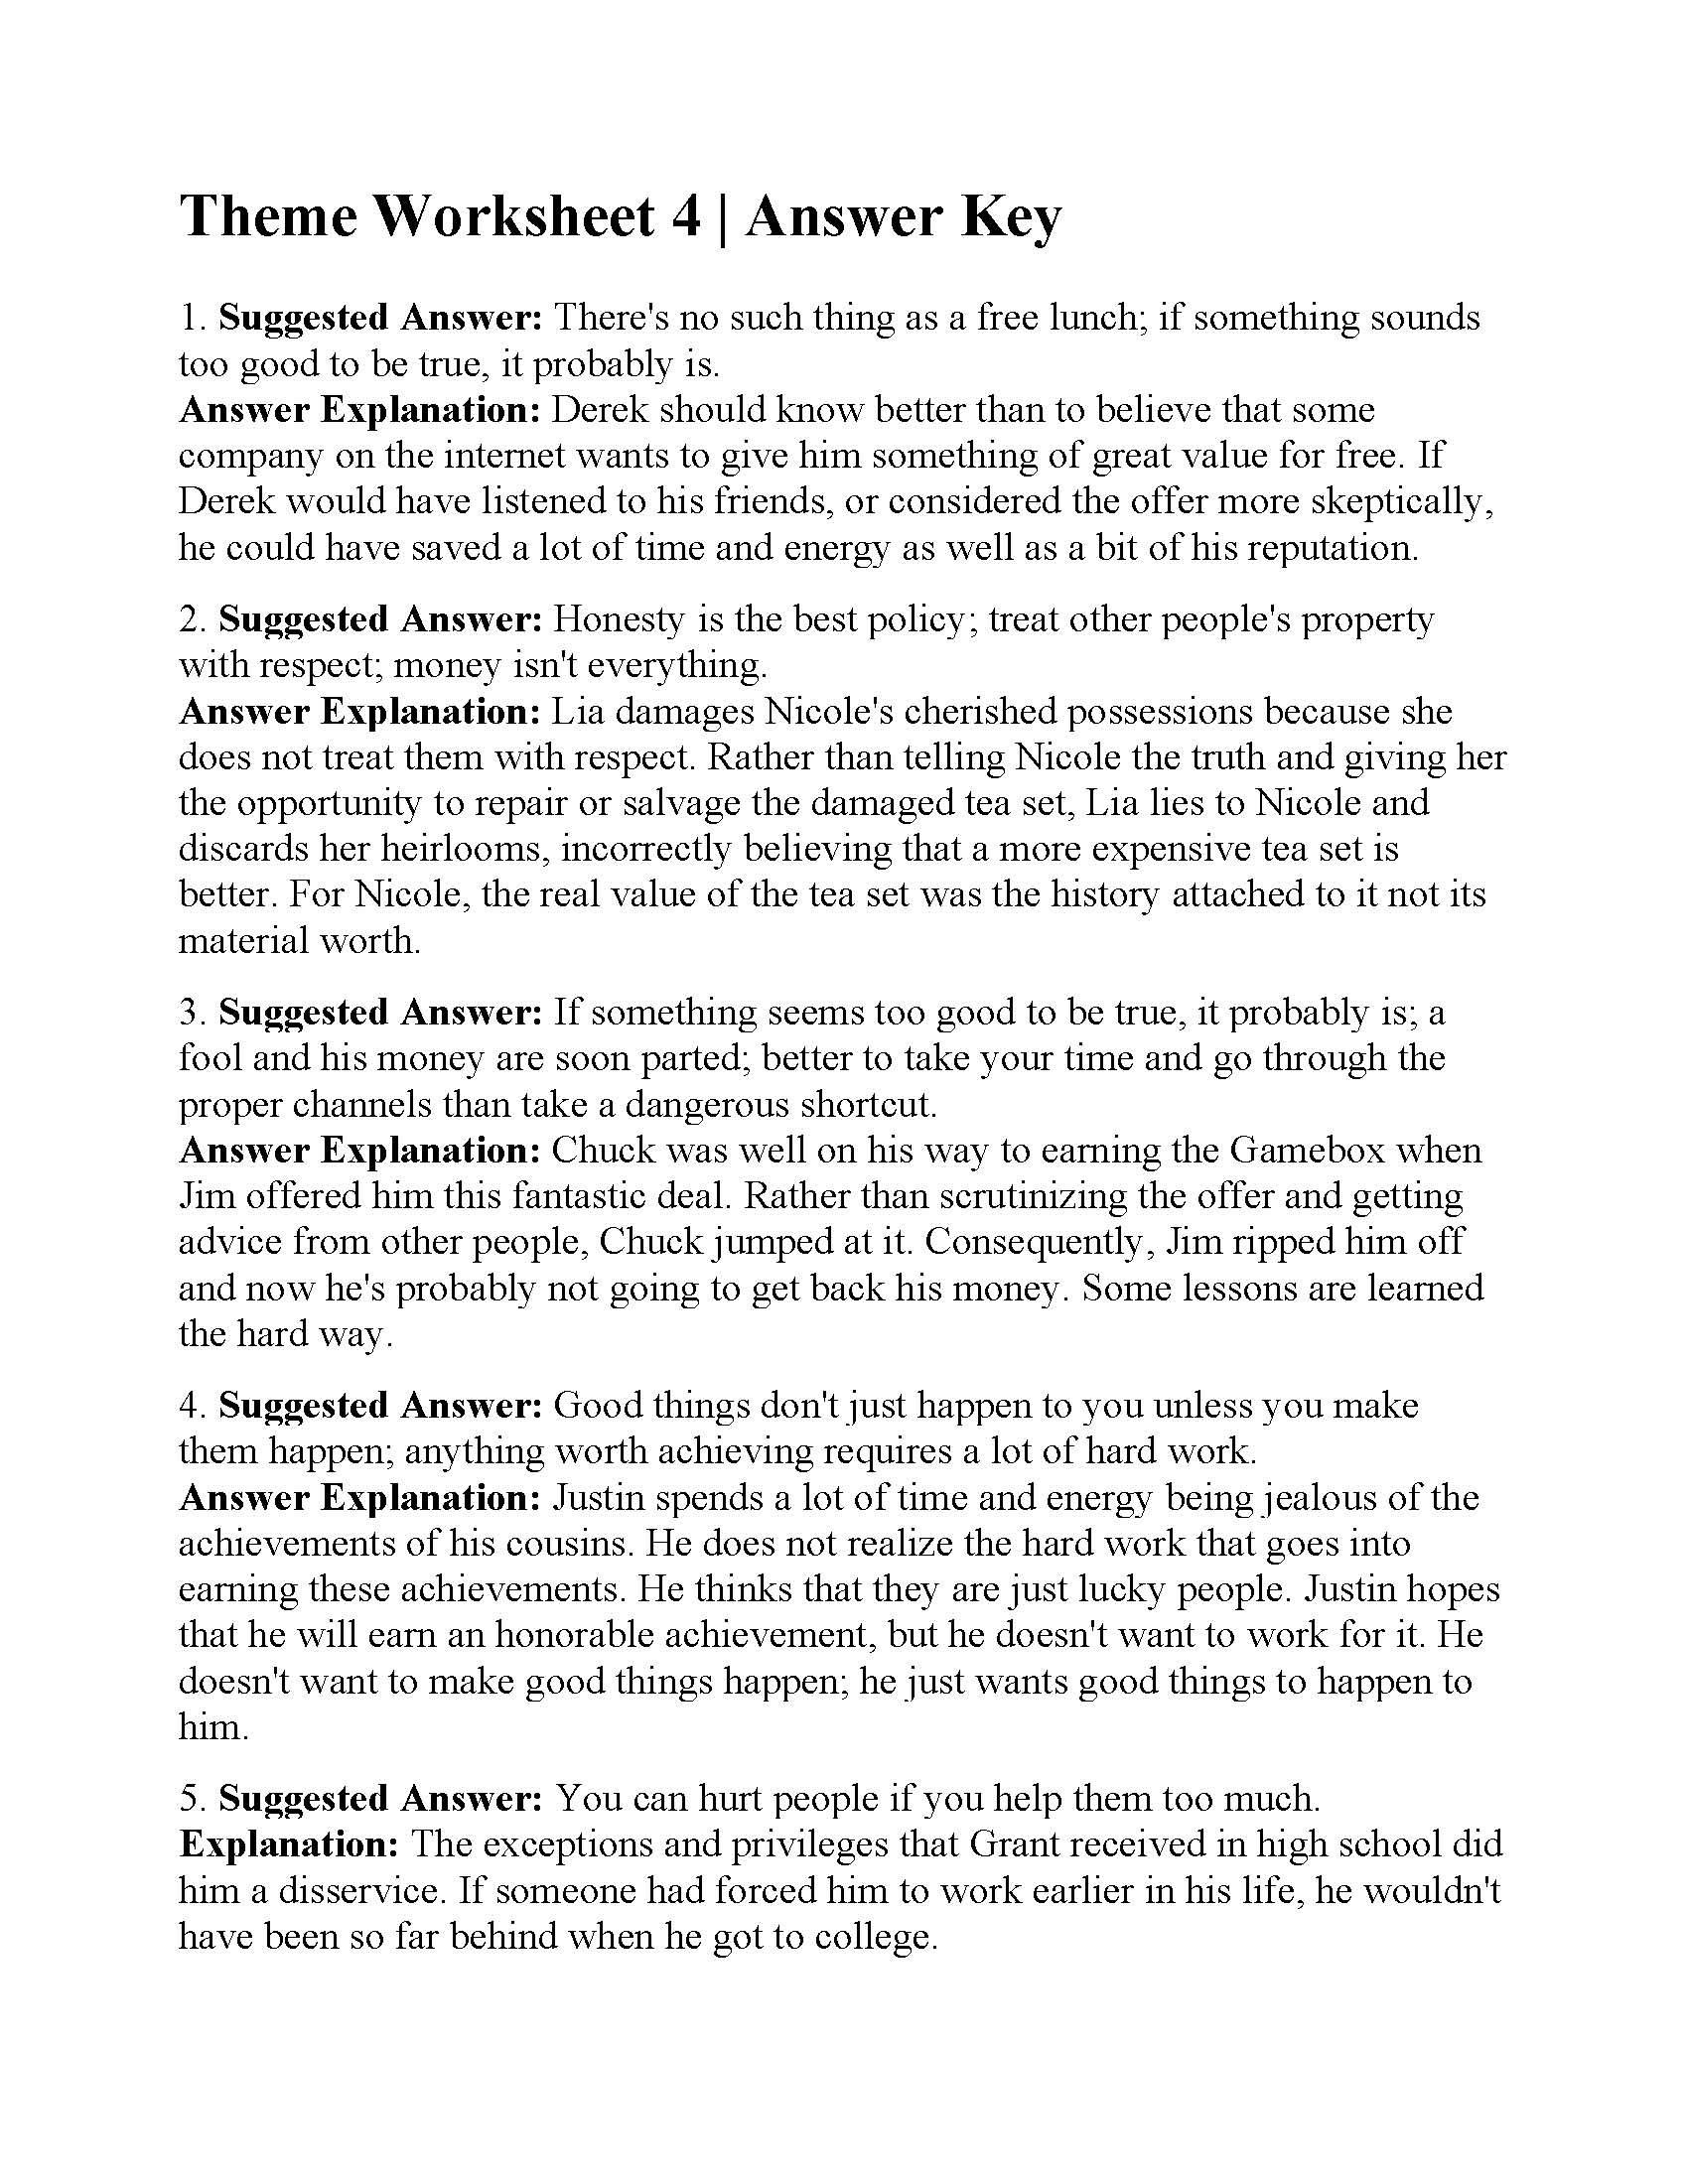 Theme Worksheets Middle School This is the Answer Key for the theme Worksheet 4